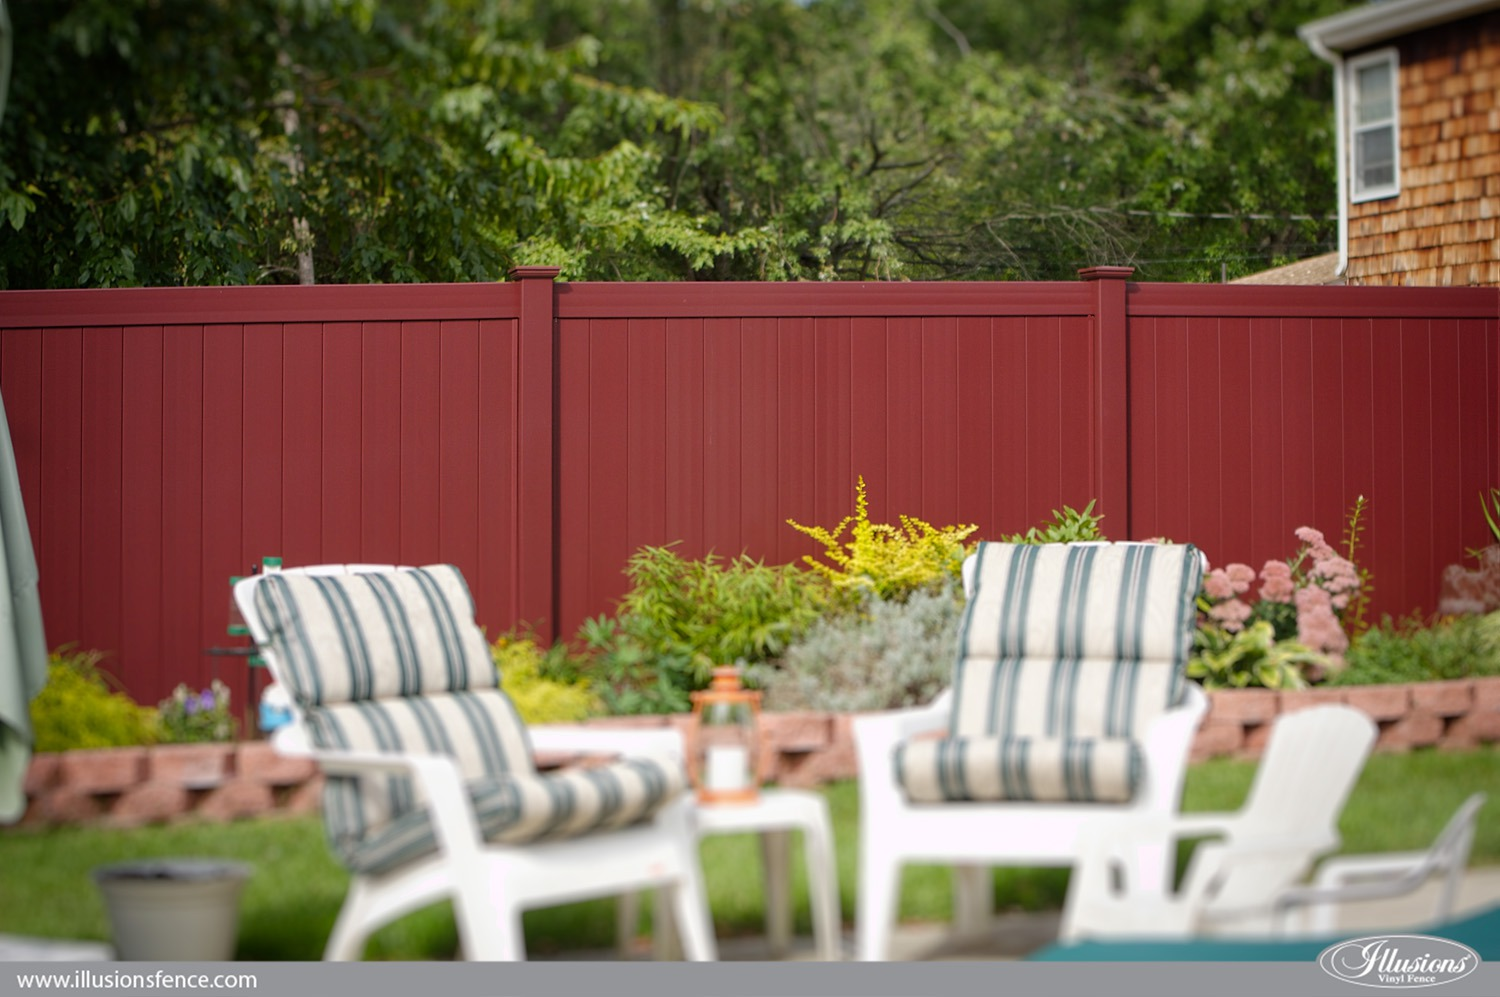 About us page 2 of 5 illusions vinyl fence burgundy pvc vinyl privacy fence from illusions vinyl fence baanklon Image collections